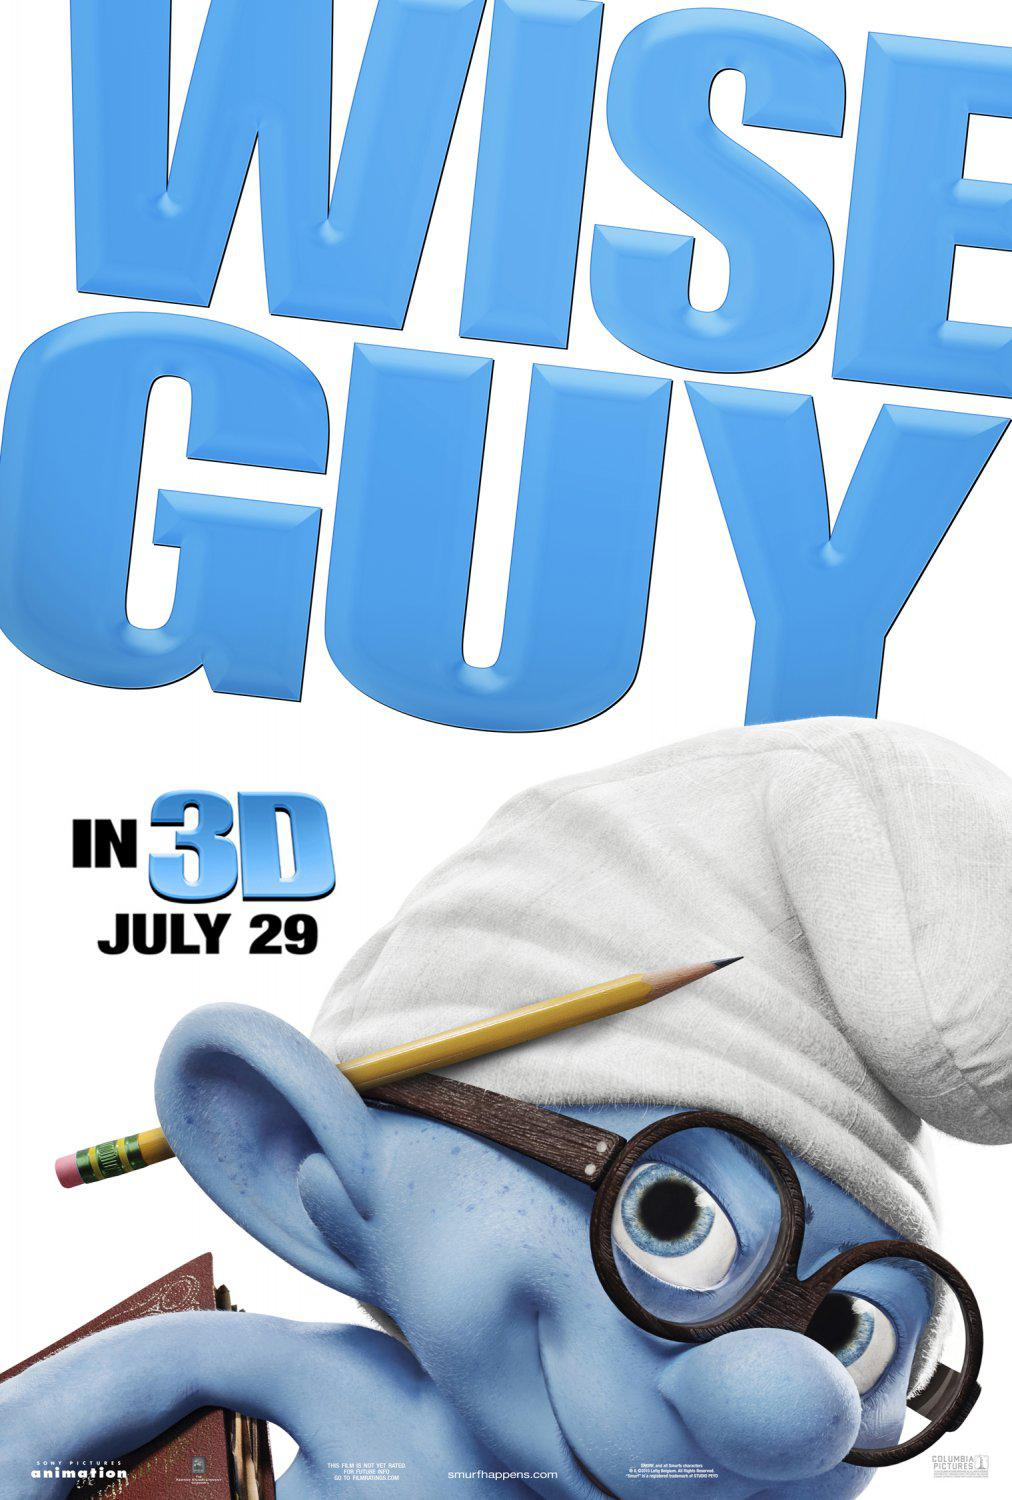 Film I Puffi in 3D - Movie Smurfs in 3D - Wise Guy